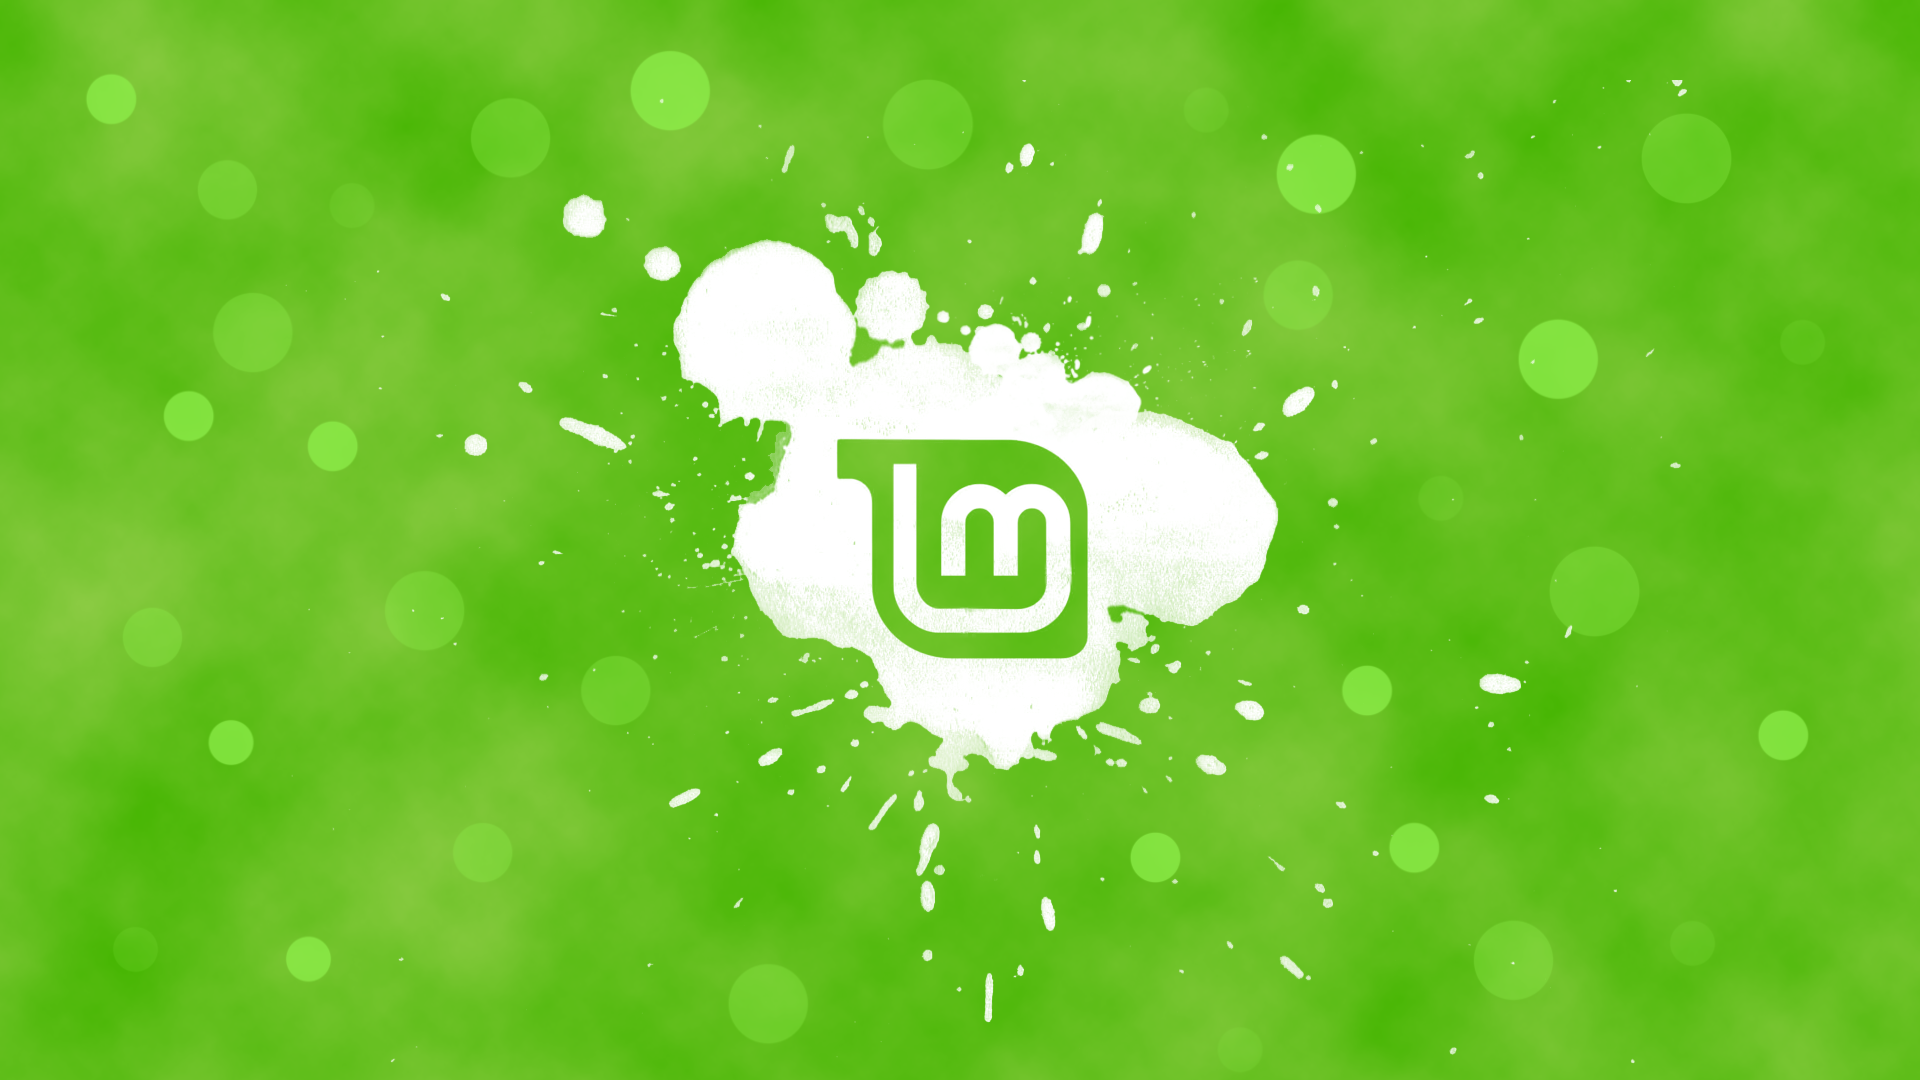 free download wallpaper other wallpaper from mu linux distro of choice linux mint 1920x1080 for your desktop mobile tablet explore 48 wallpaper for linux mint linux mint wallpaper hd linux mint linux mint wallpaper hd